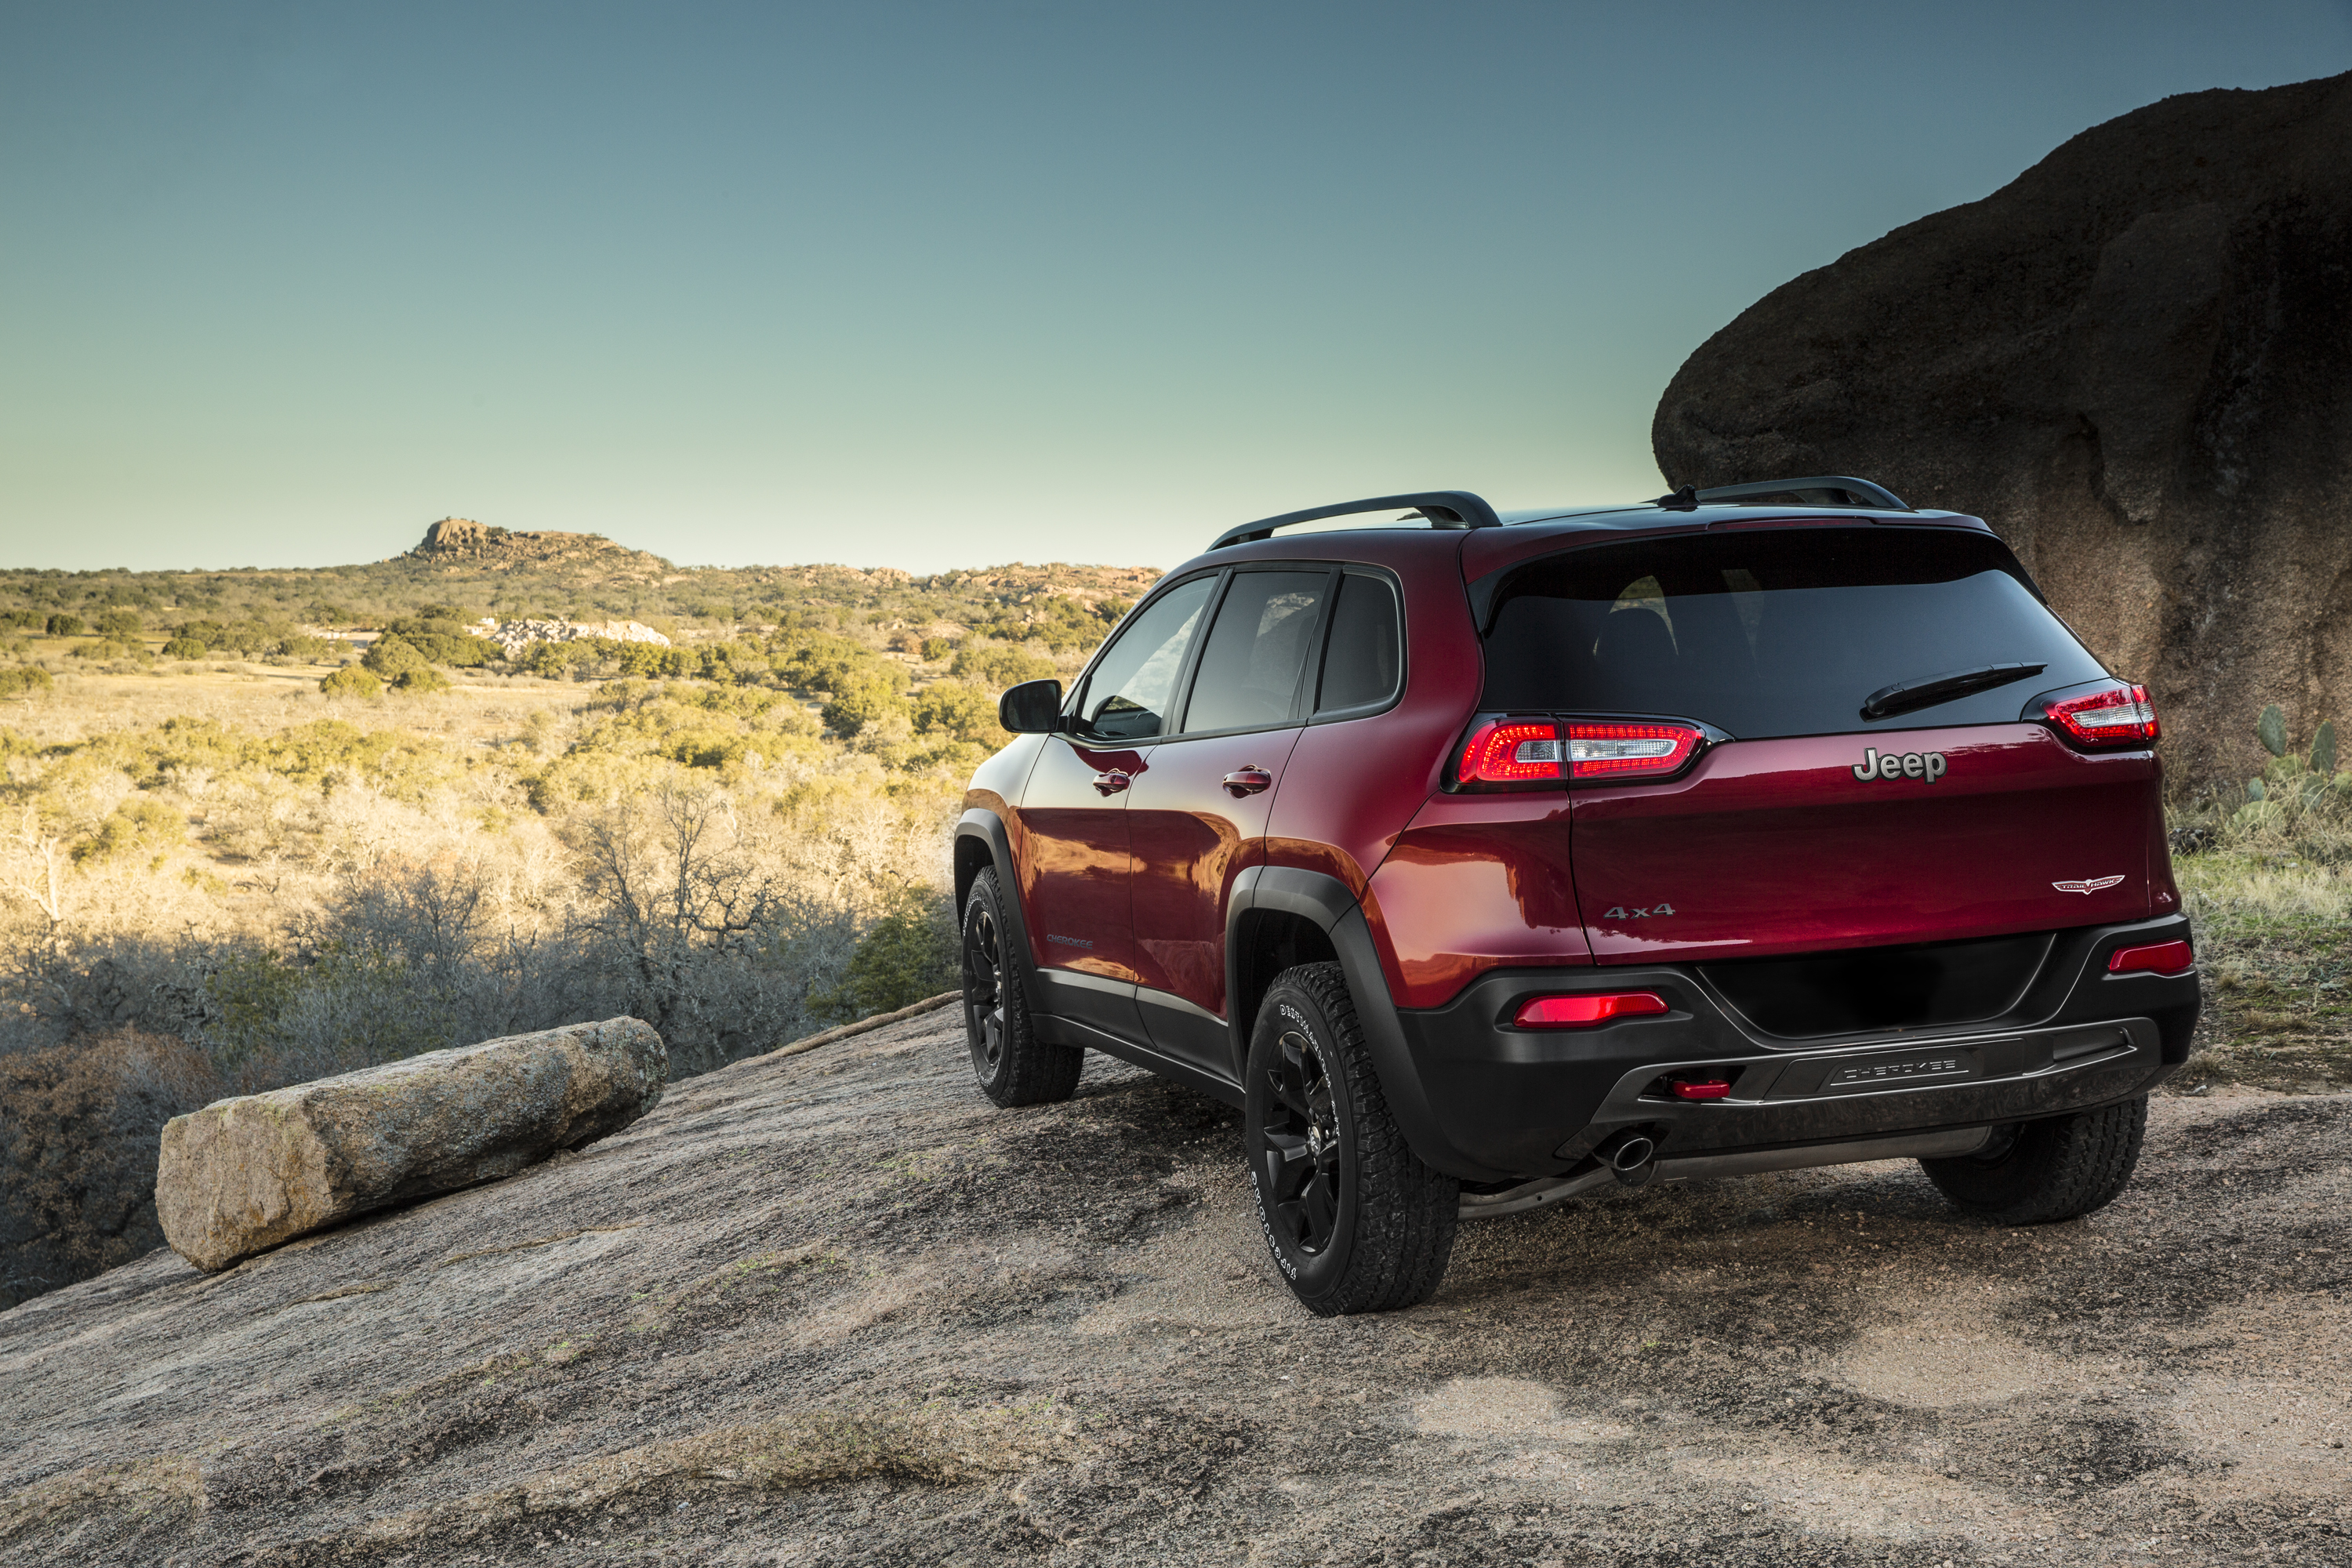 2014 Jeep Cherokee Trailhawk Revealed The Truth About Cars